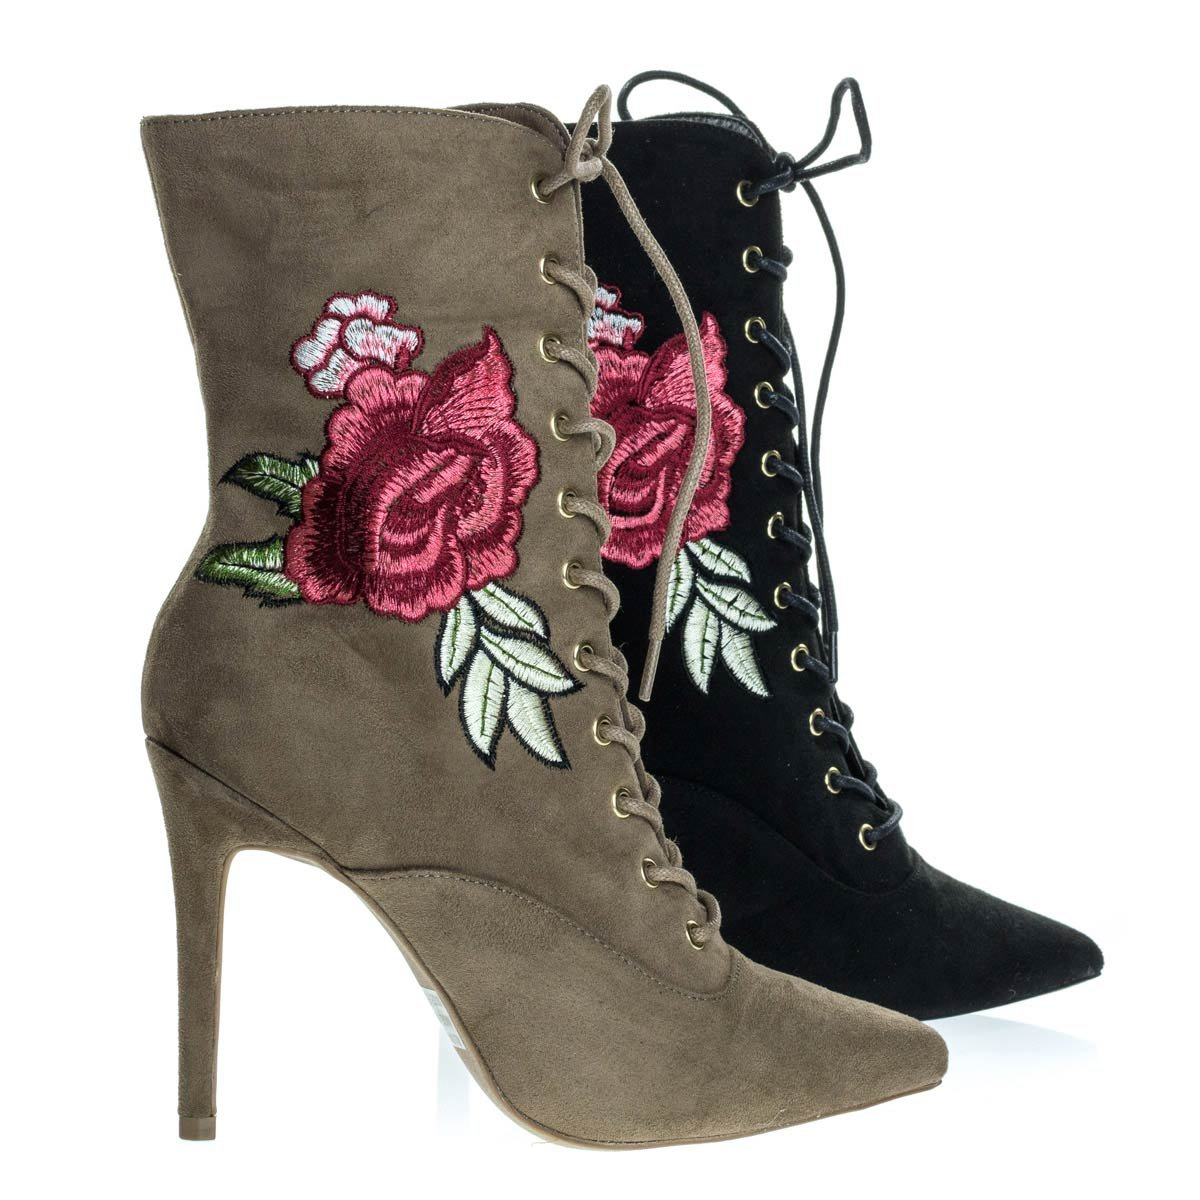 Wild Diva Akira147A Taupe Beige Women Corset Combat Boot w Rose Metallic Embroidered Stitch High Heel -7